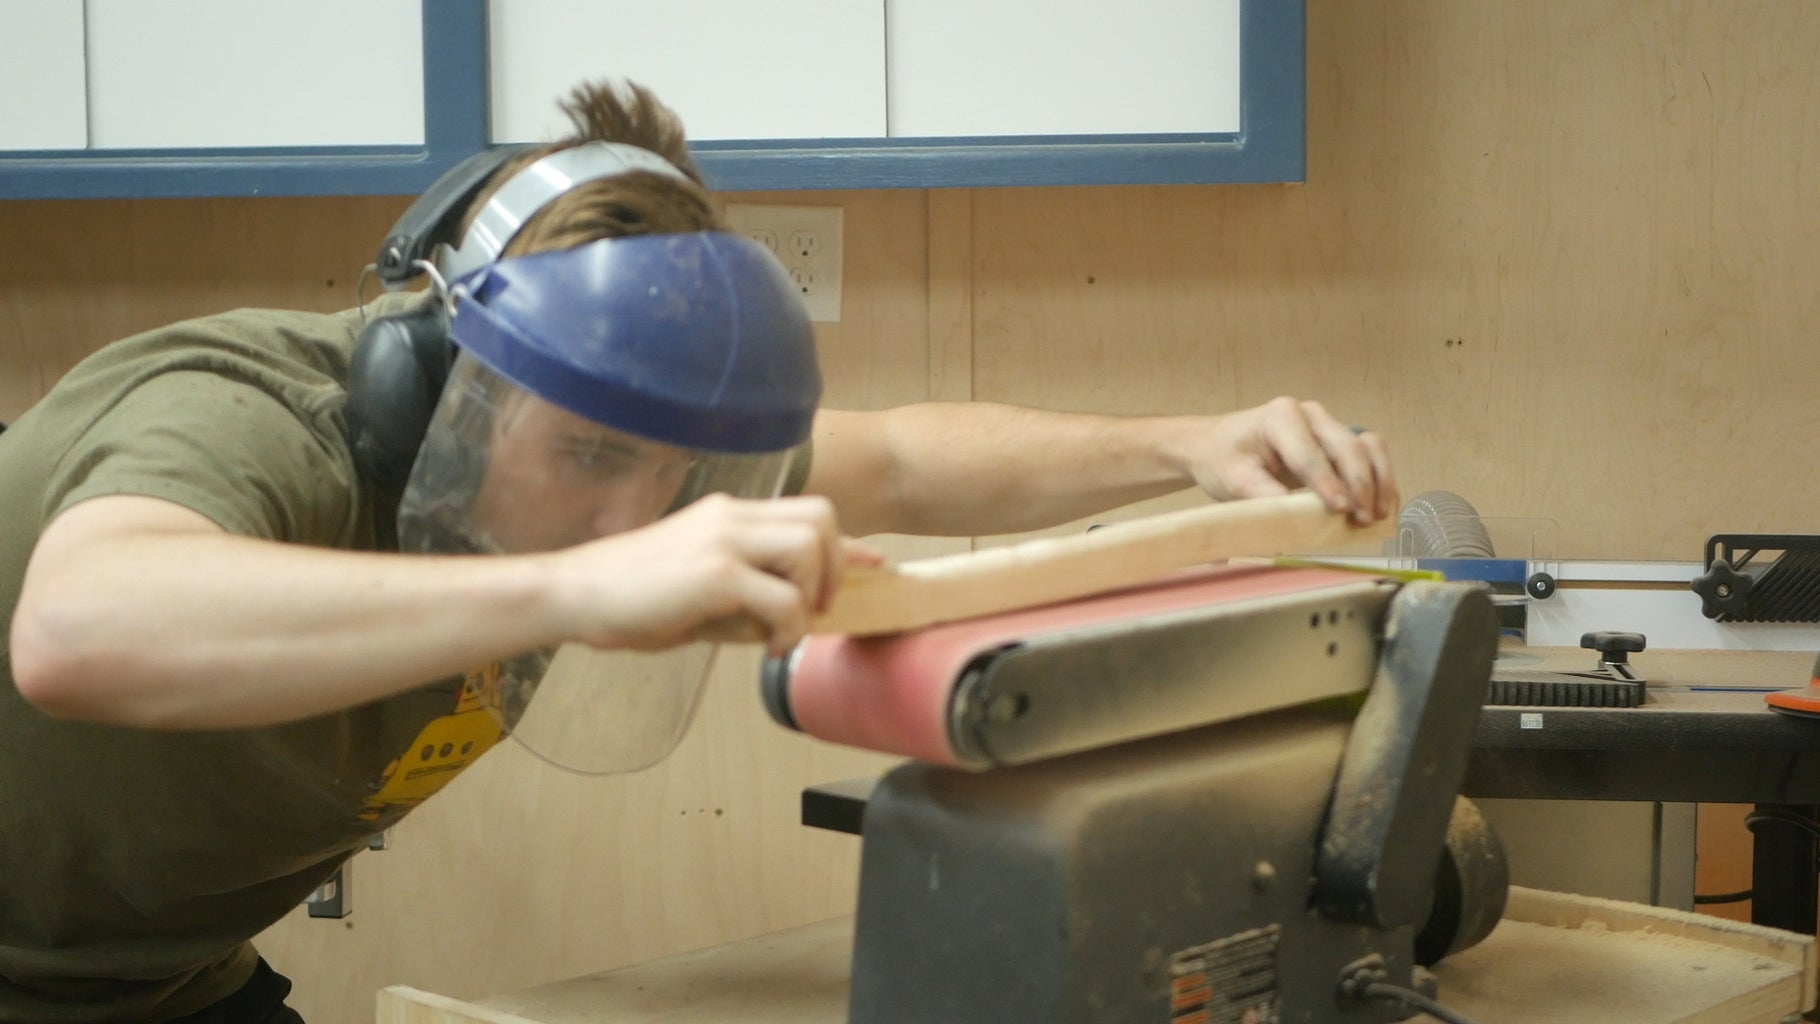 Power-Carving - Round 2